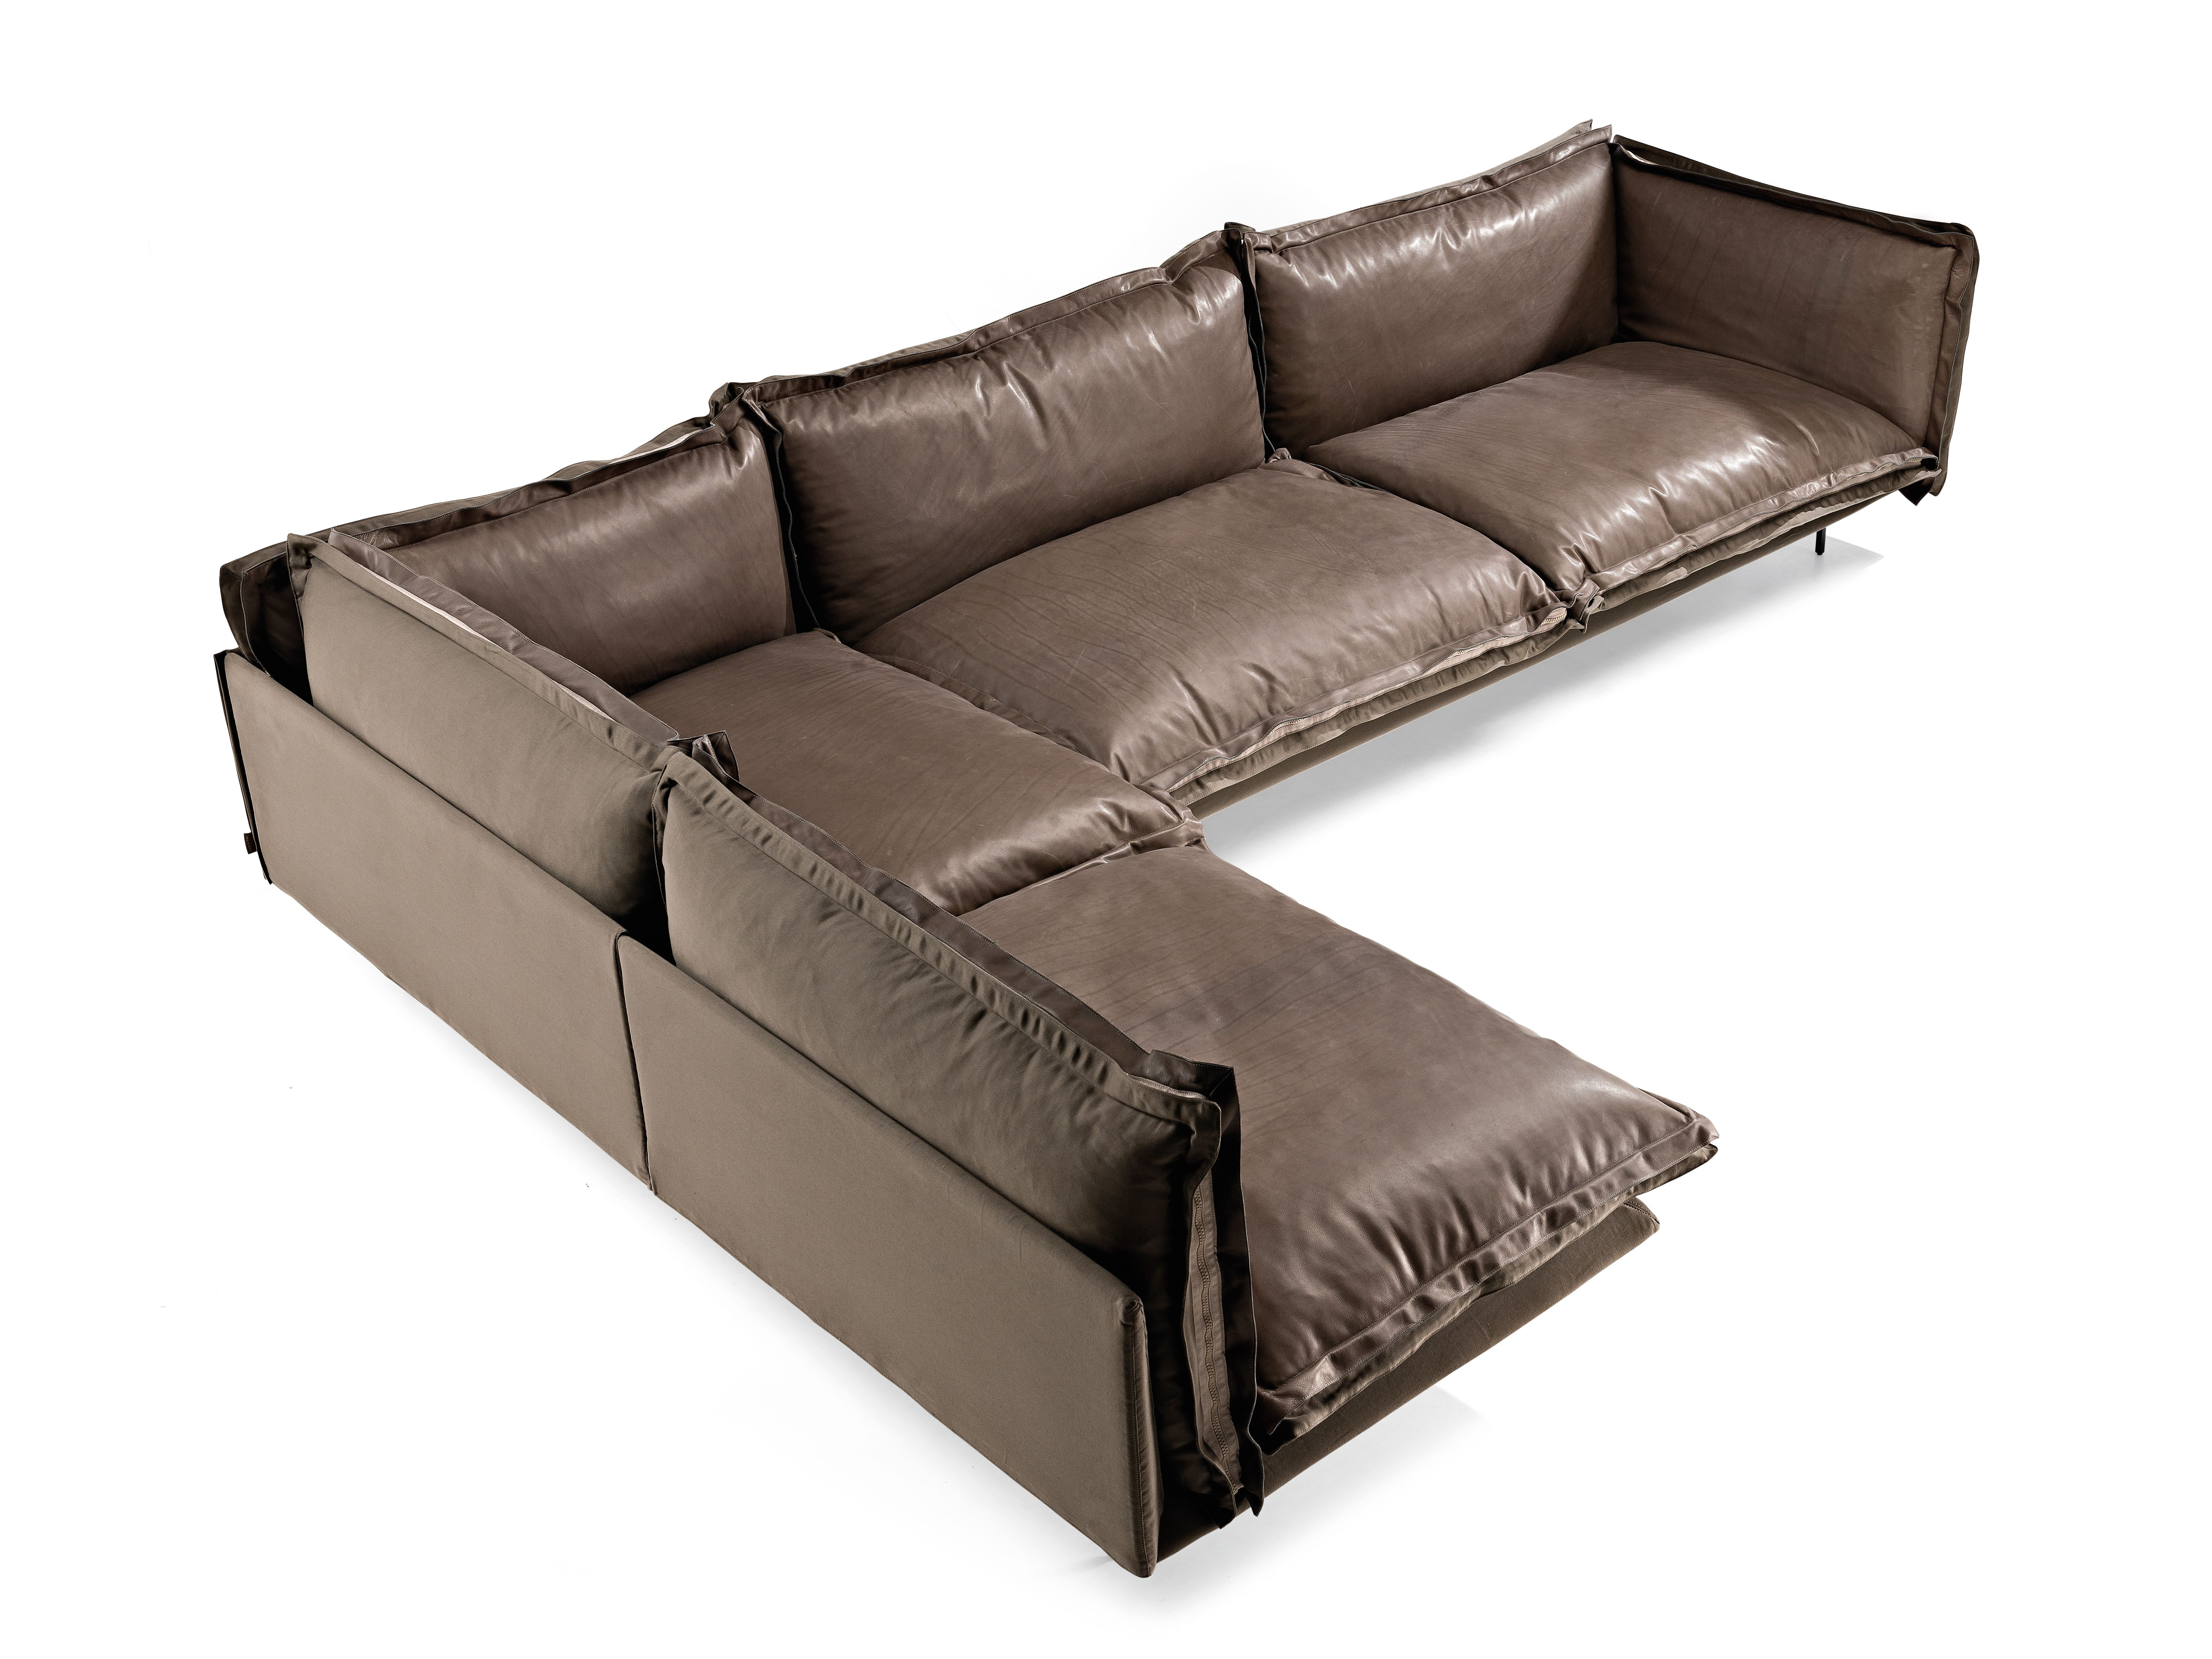 AUTO-REVERSE Sectional sofa Auto-Reverse Collection by Arketipo design Giuseppe Viganò  sc 1 st  Pinterest : reverse sectional sofa - Sectionals, Sofas & Couches